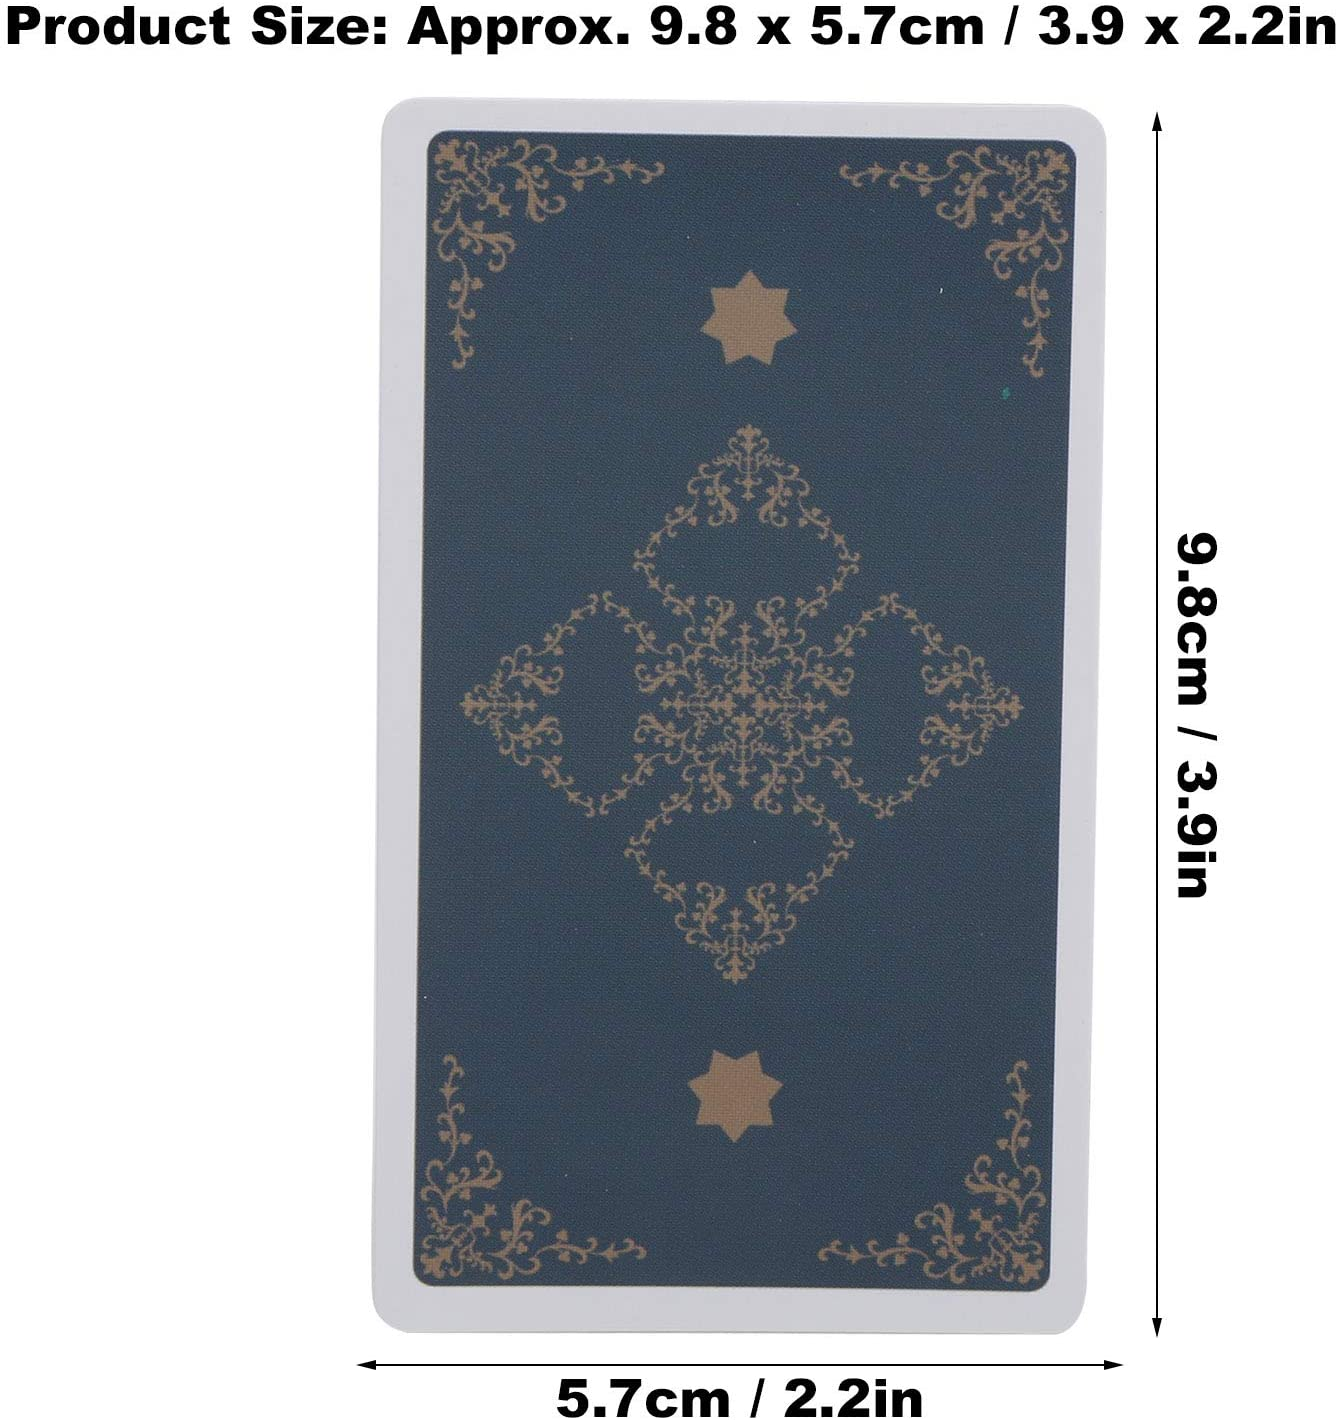 Holographic Witch Tarot Card Set Fate Divination Card Fortune Telling Card Adventure Book with Flash Effect for Beginners Family Friends Party English 79 Tarot Card Decks